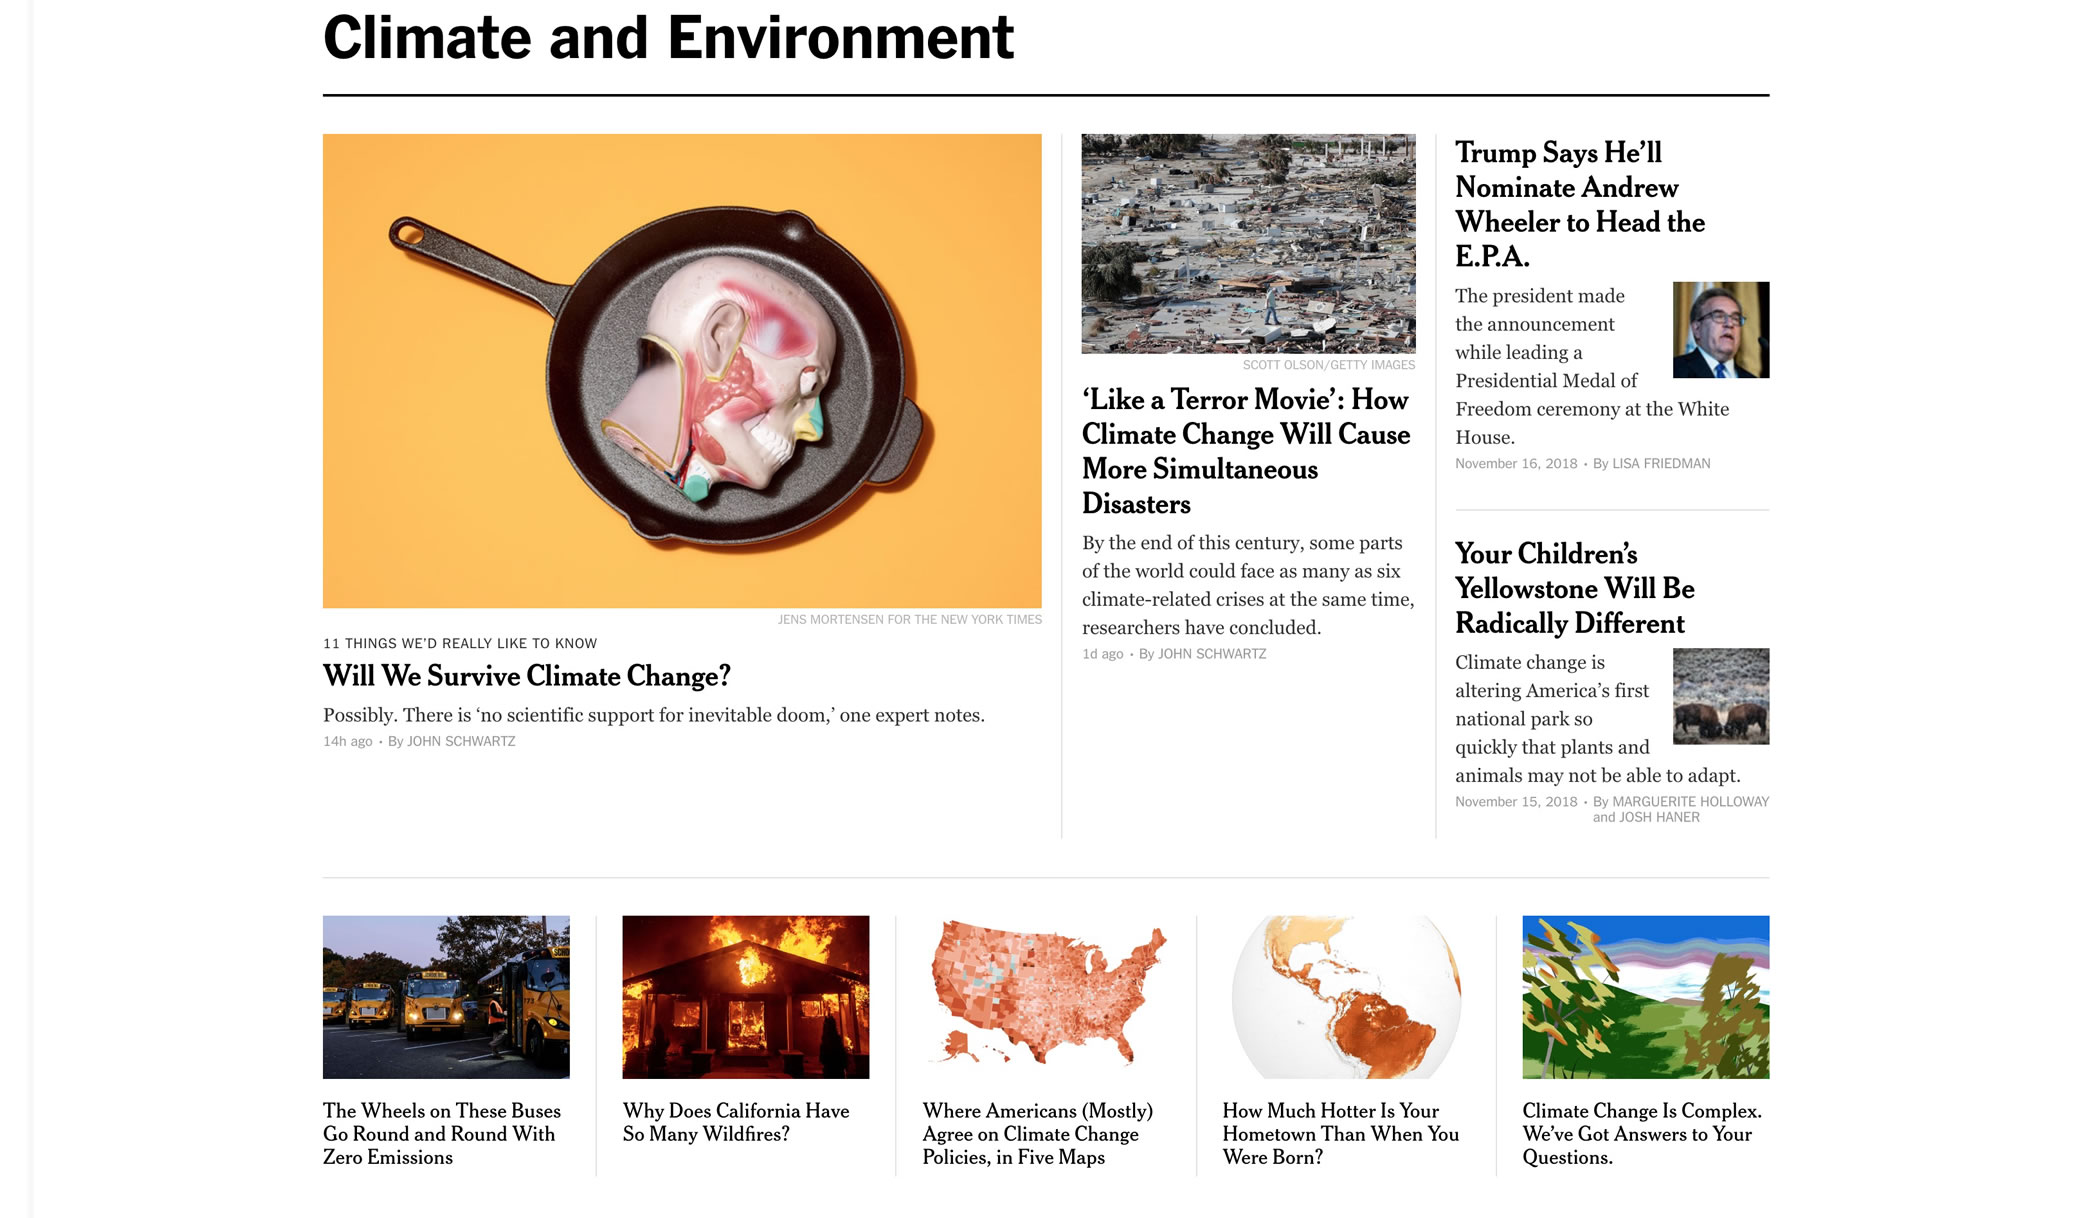 Climate and Environment Section